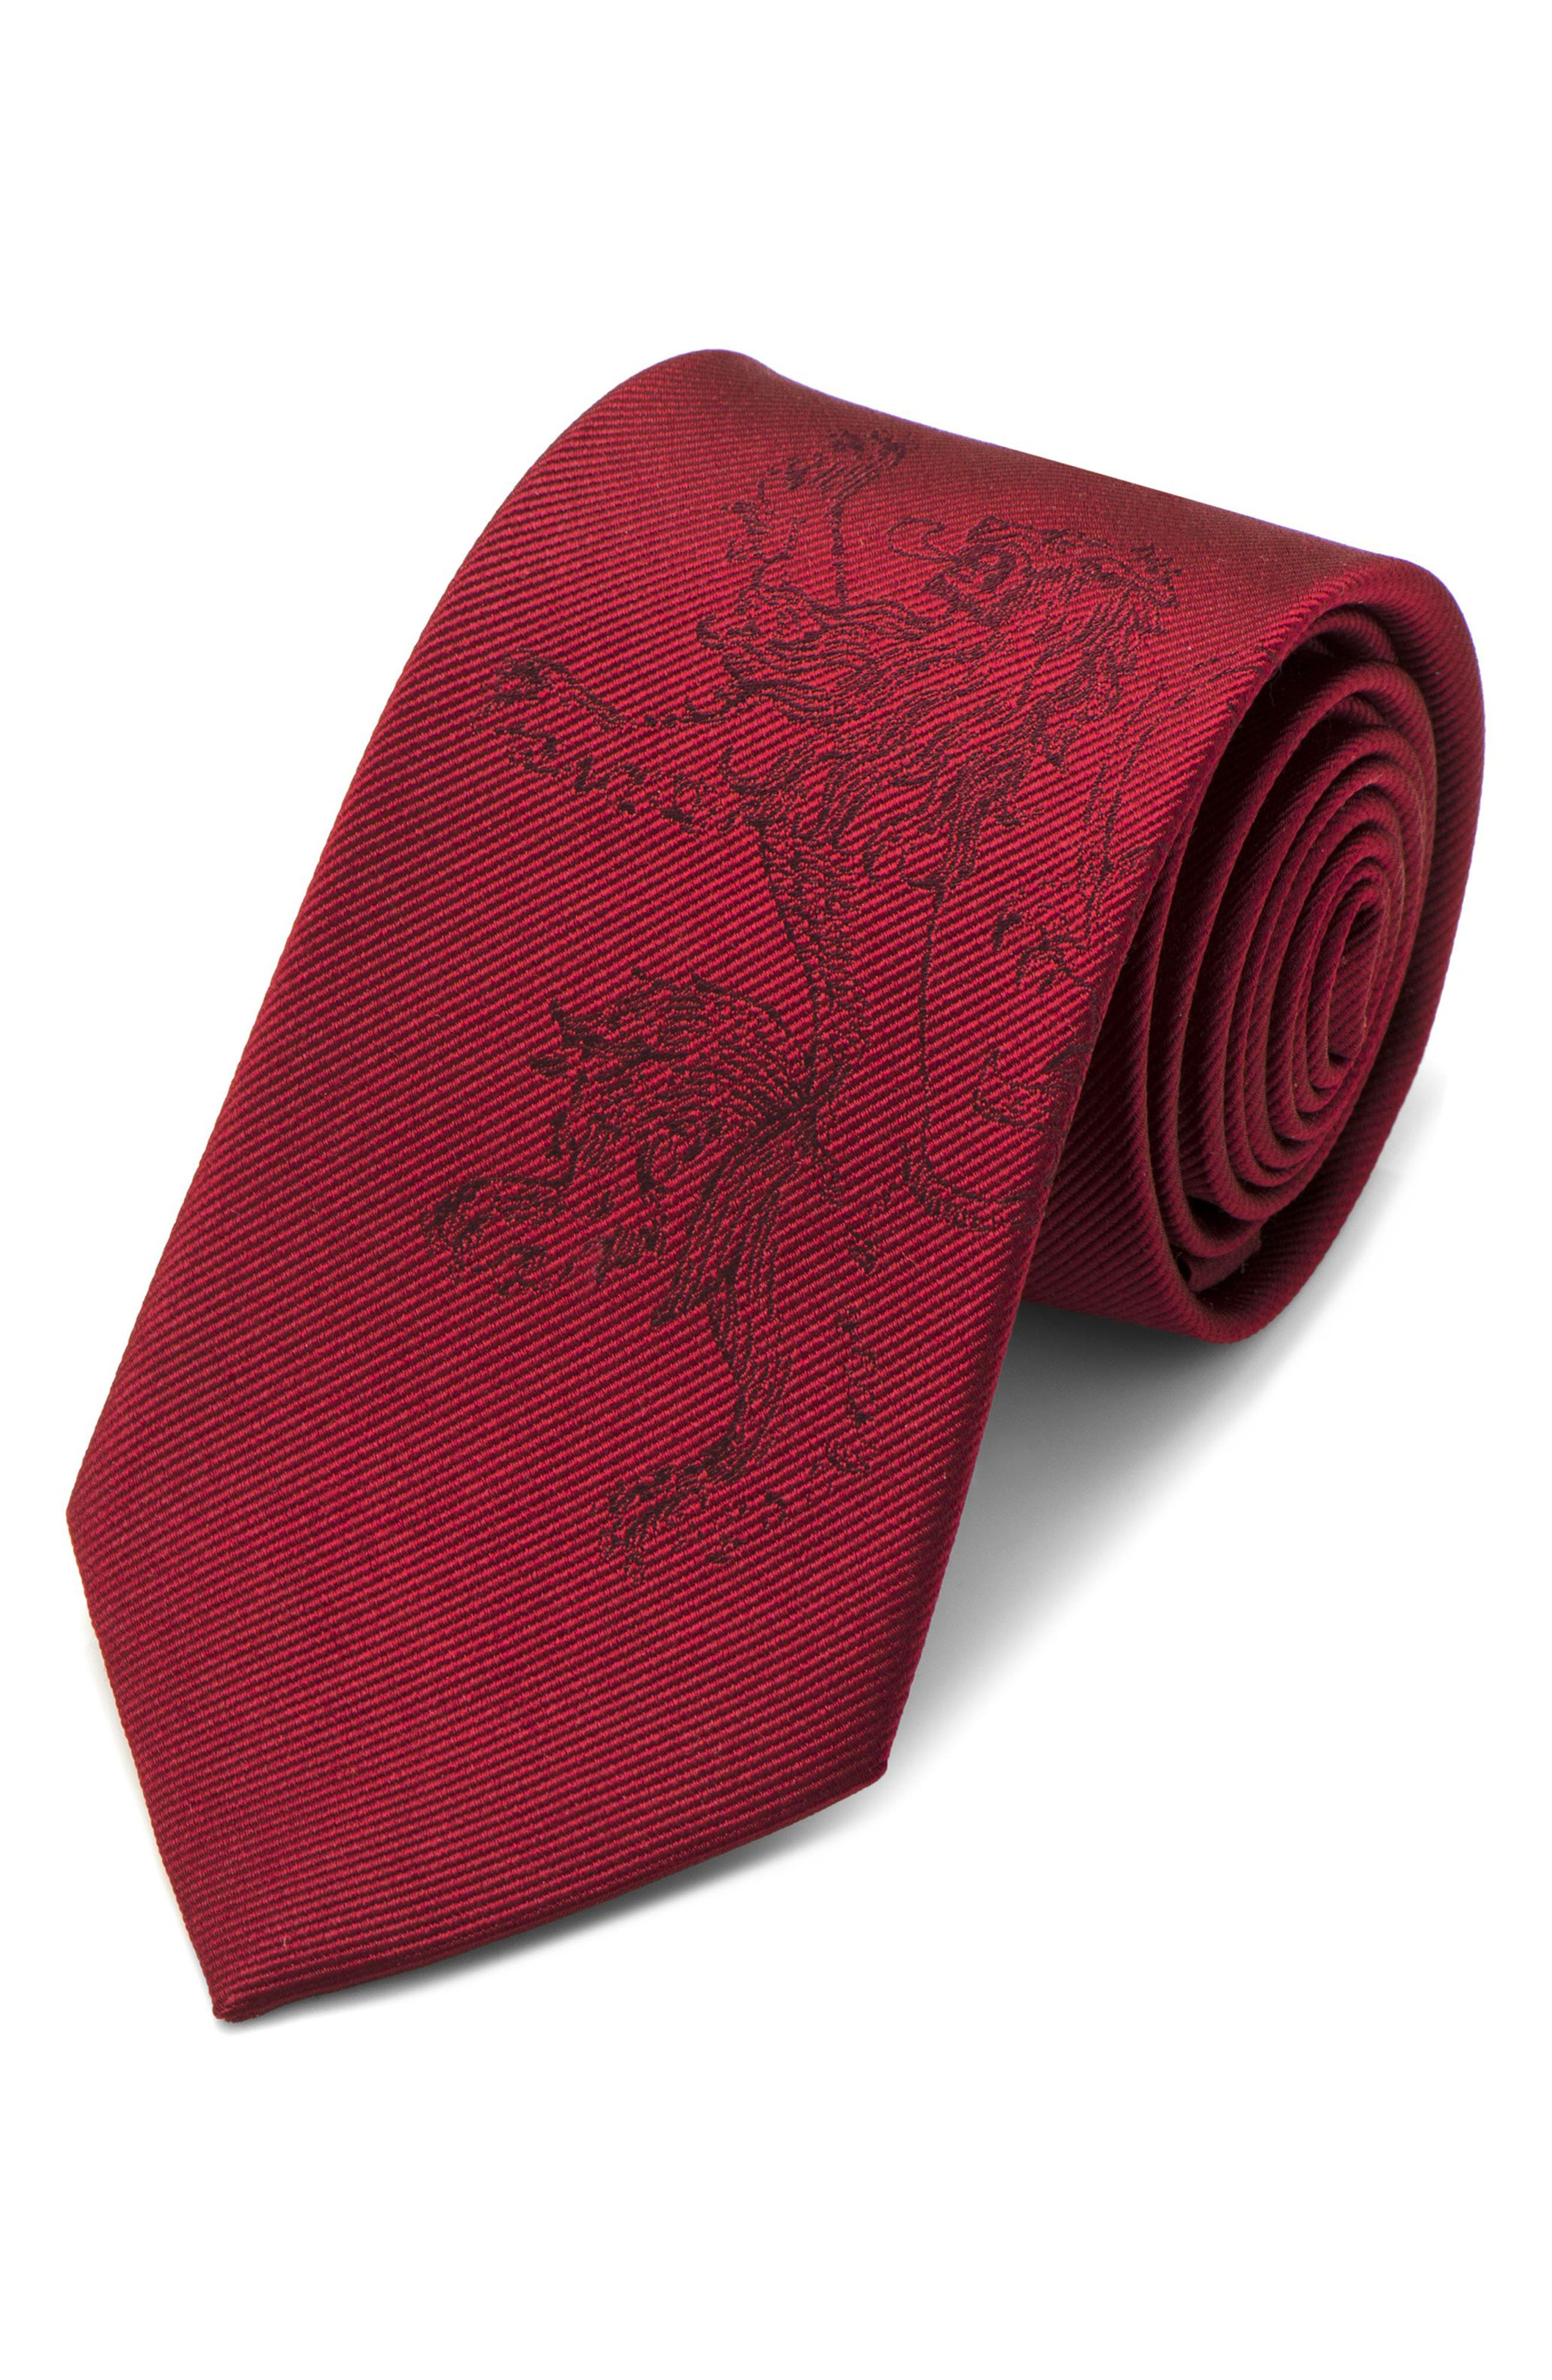 Game of Thrones Lannister Silk Tie,                             Main thumbnail 1, color,                             RED